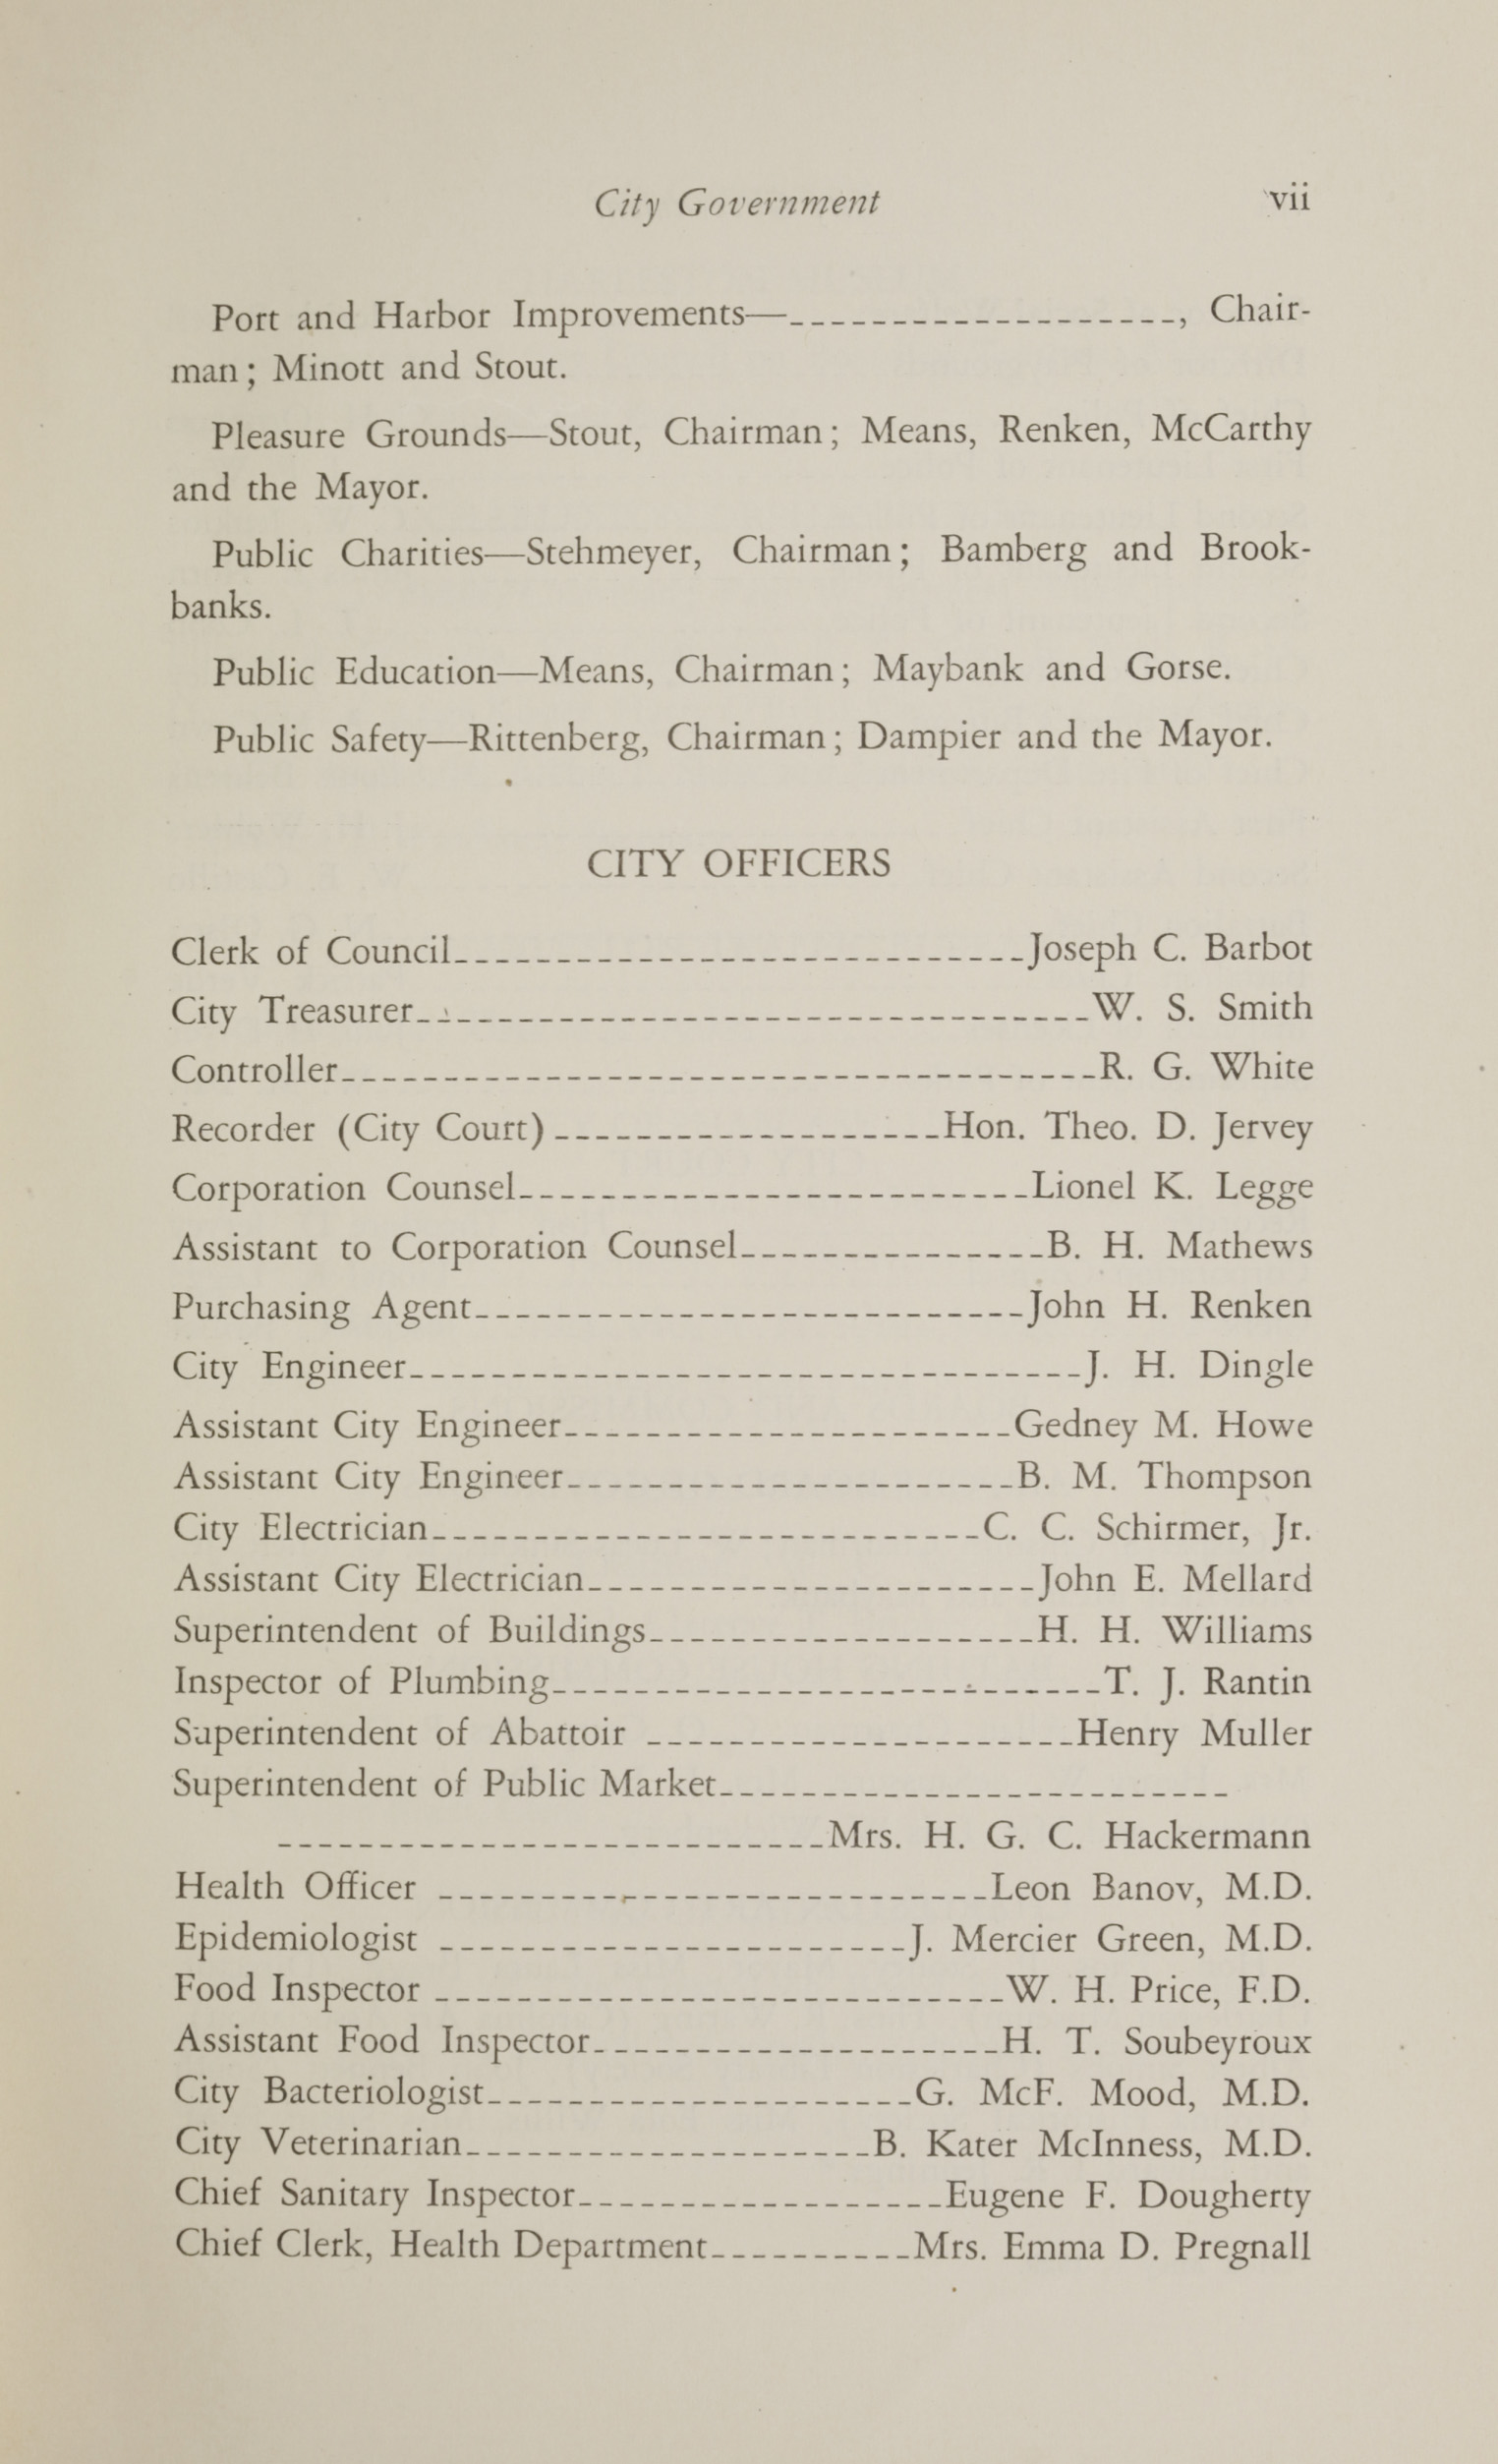 Charleston Yearbook, 1930, page vii